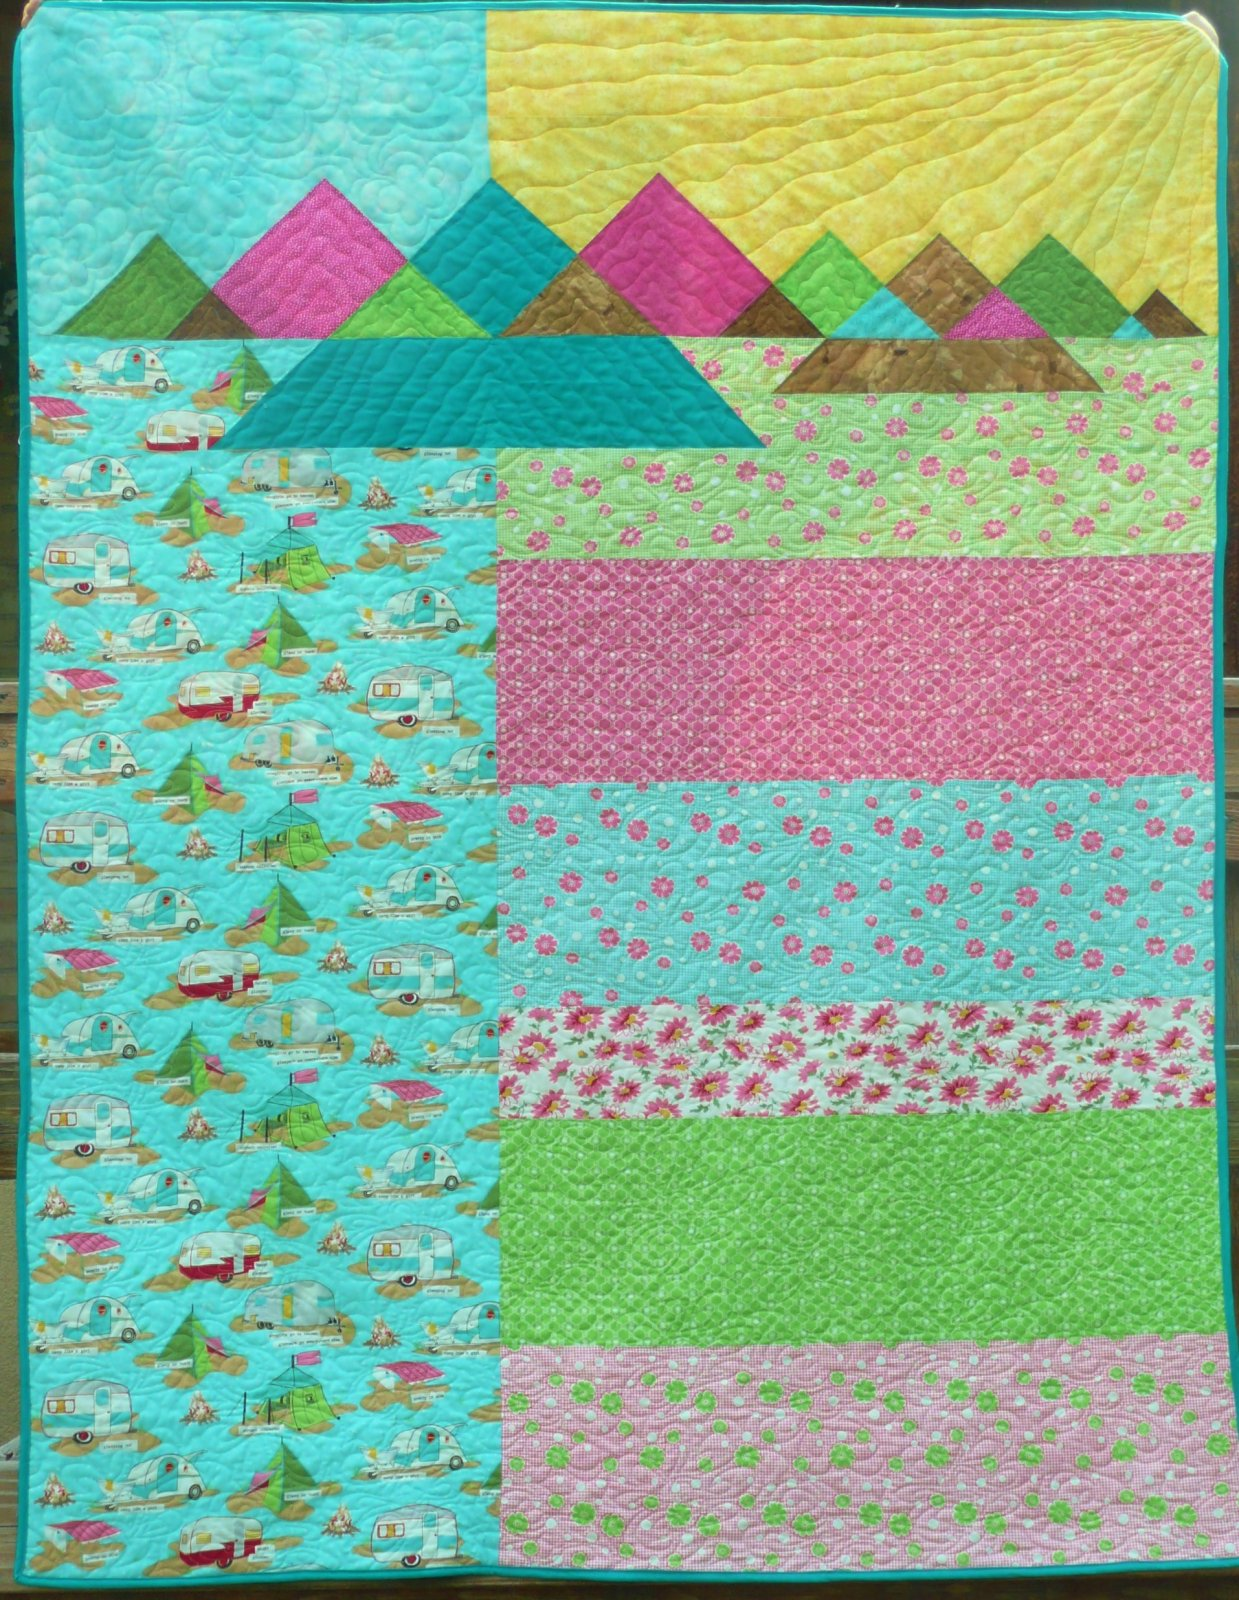 Glamping in the Mountains Quilt Kit 53 x 70